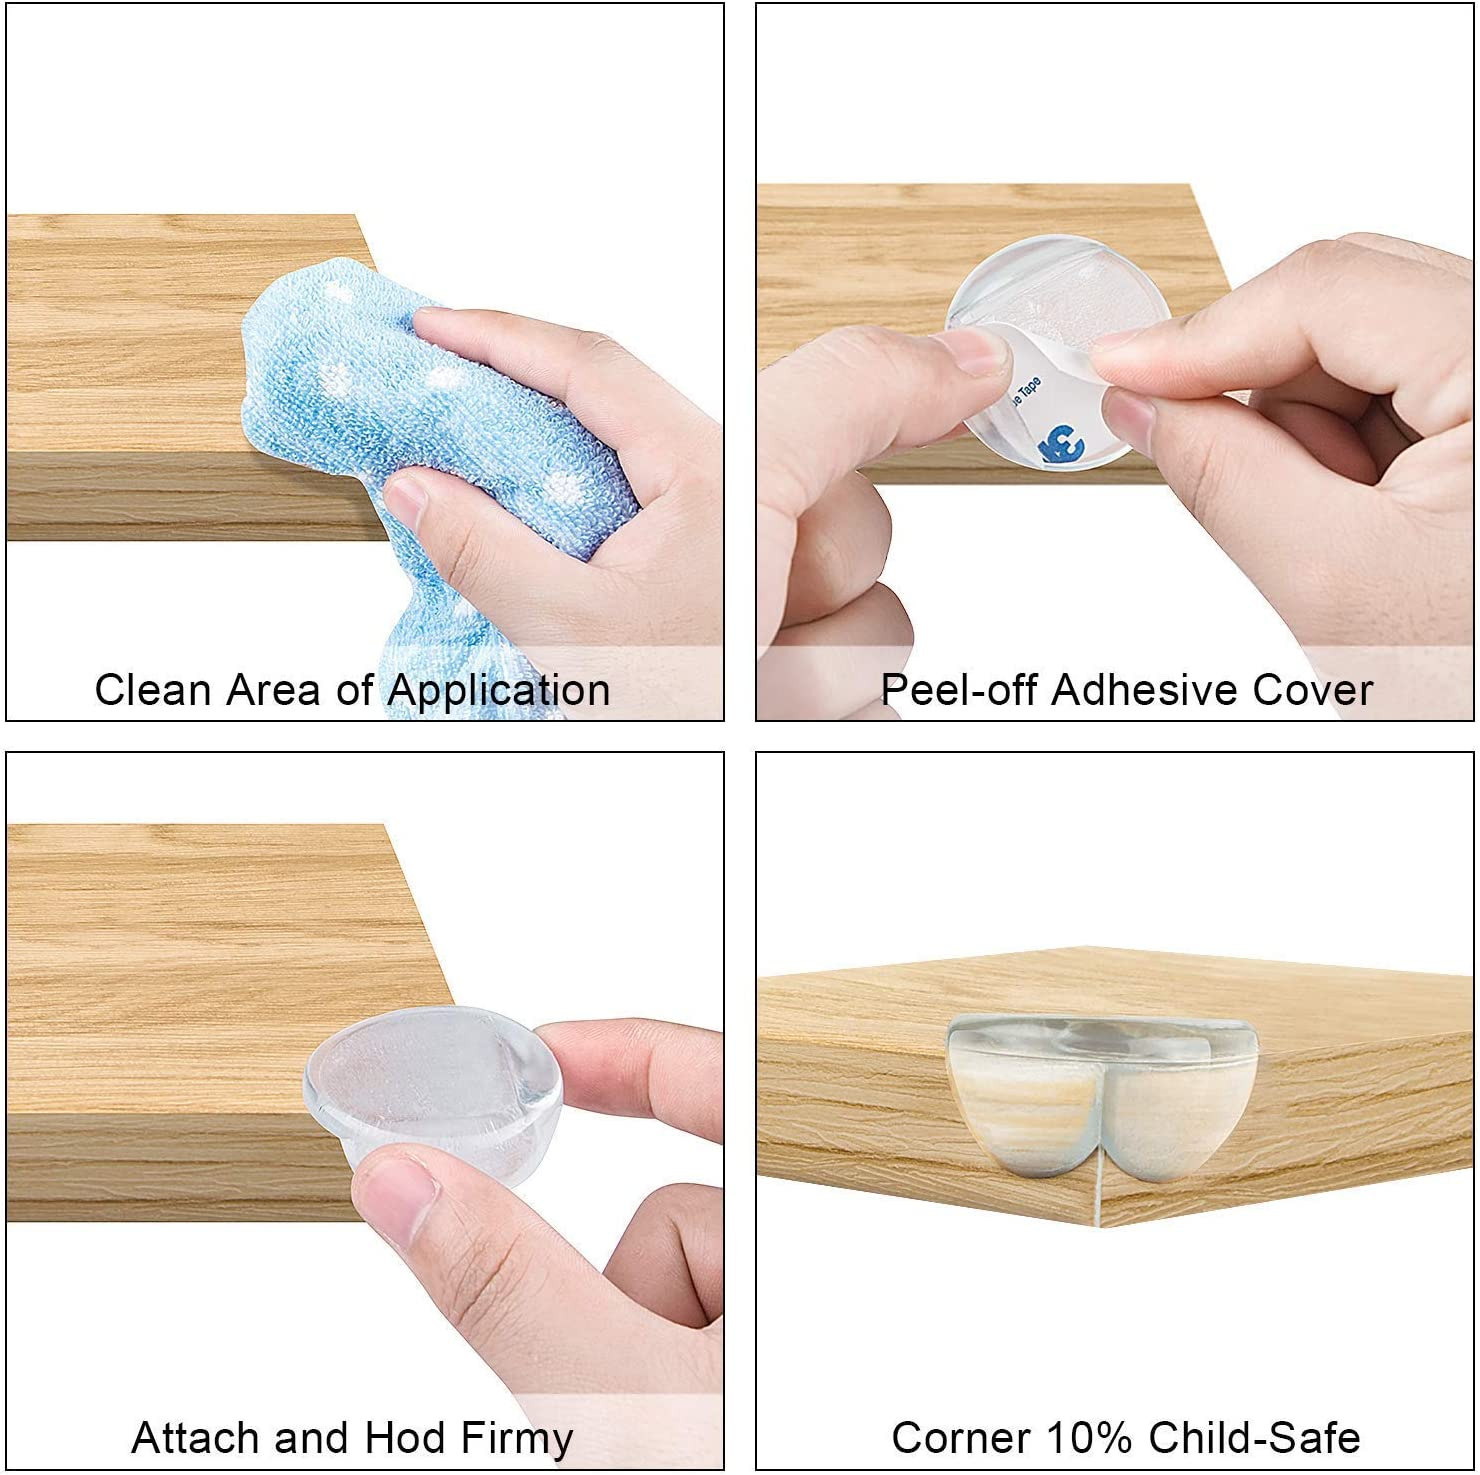 20 Pack Corner Protectors for Kids,Baby Proofing Corners,Protectors for Furniture Against Sharp Corners,Keep Baby Safety,Table Corner Protectors with Strong Adhesive Tape